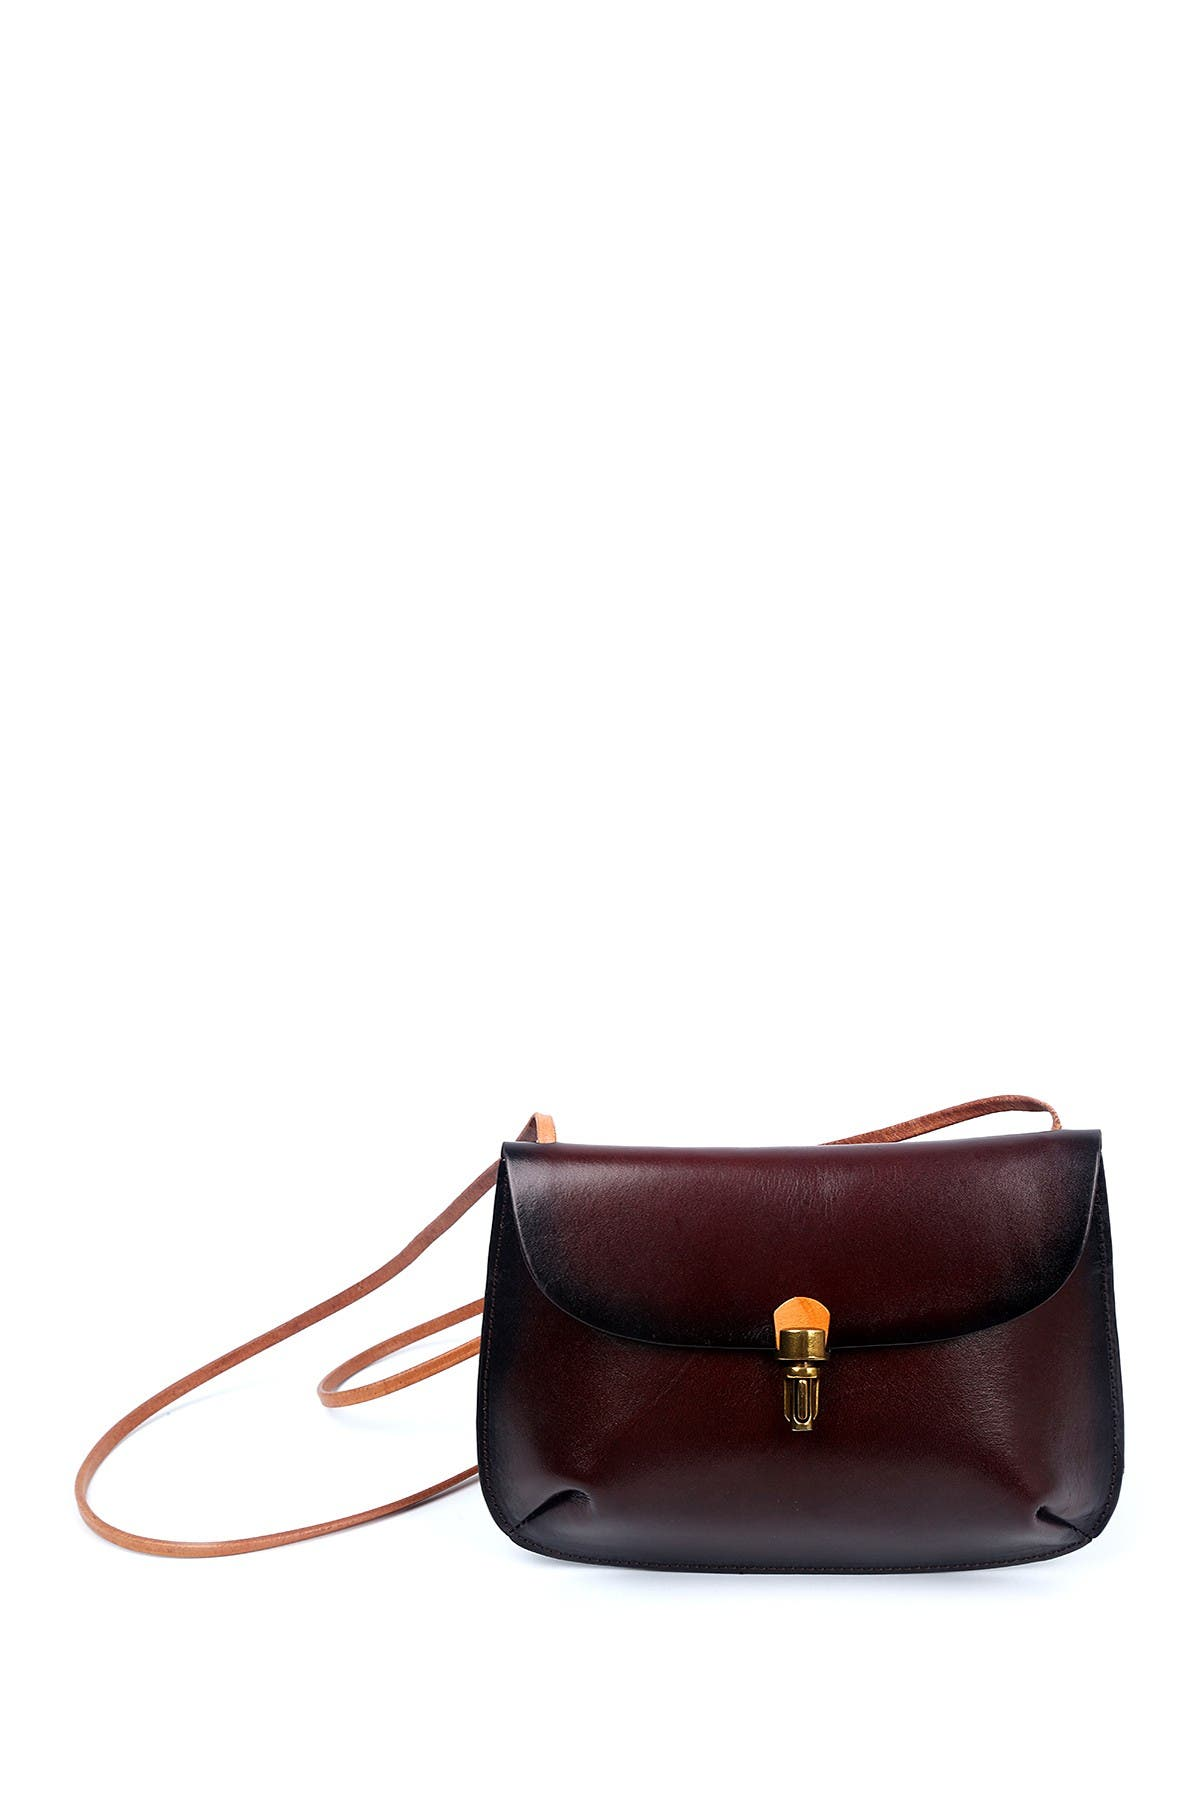 Image of Old Trend Ada Leather Crossbody Bag